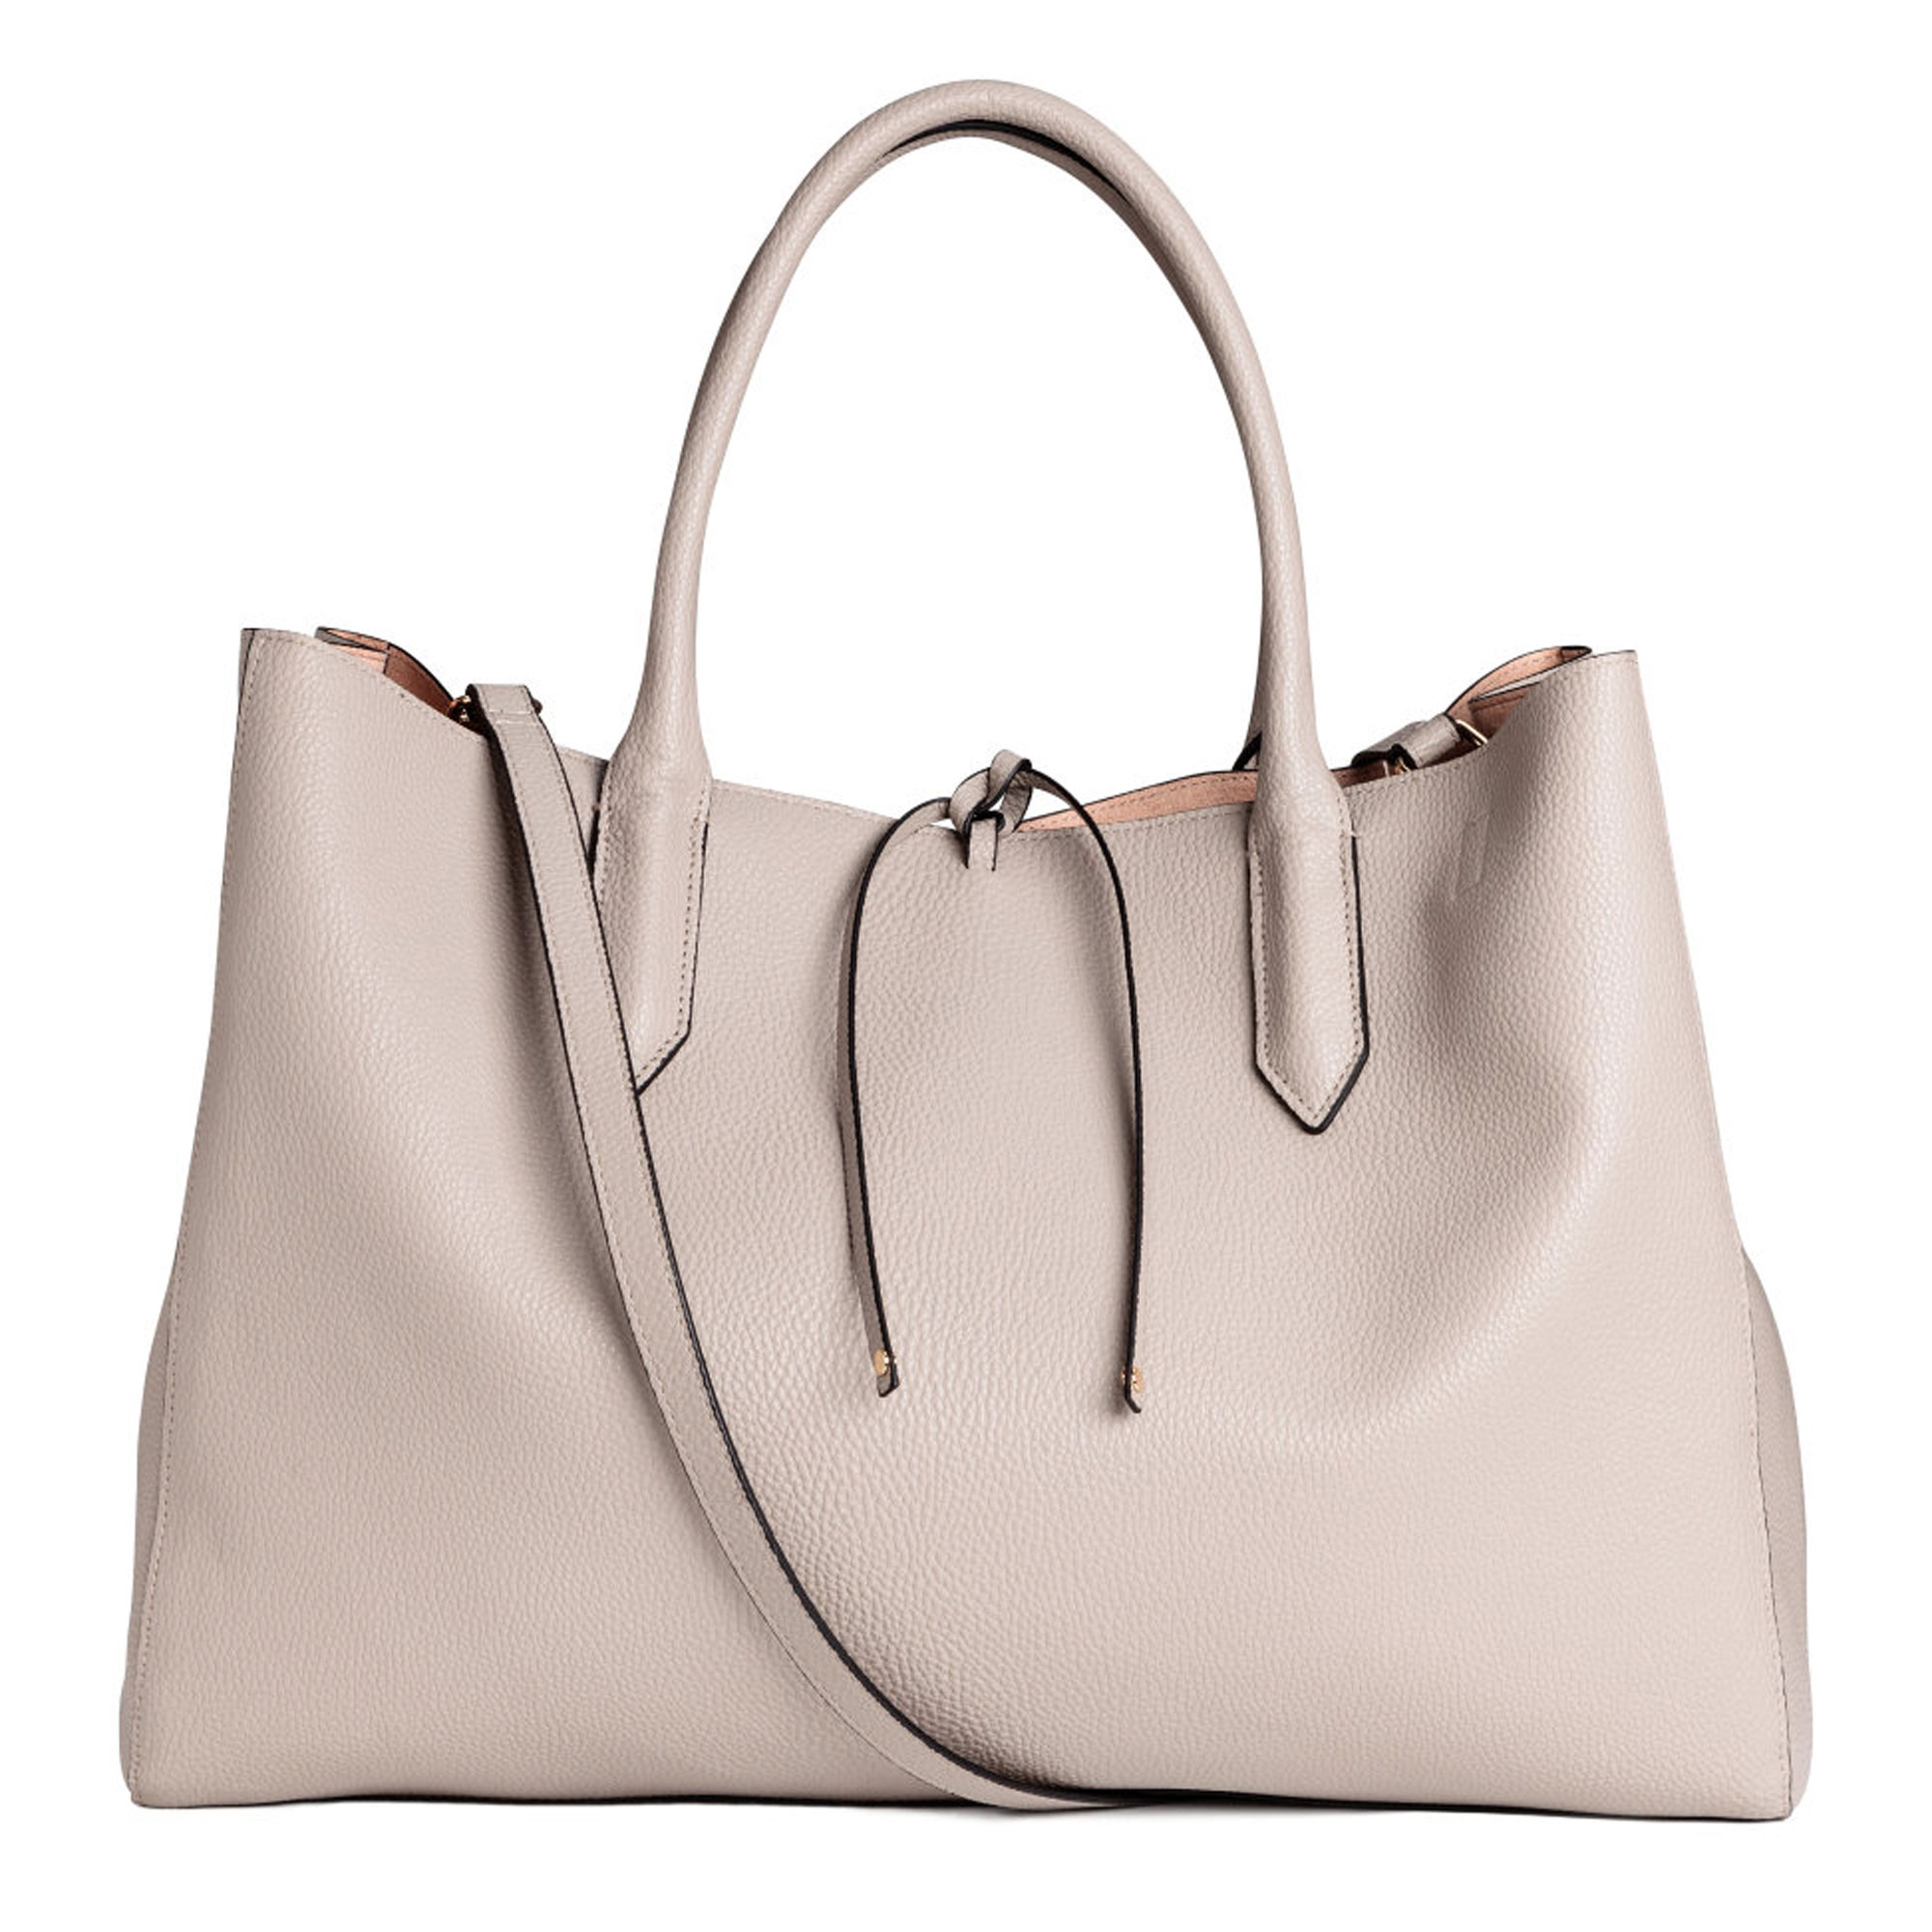 SPRING BAGS THAT LOOK EXPENSIVE - Gallerycream handbagCourtesy H&M